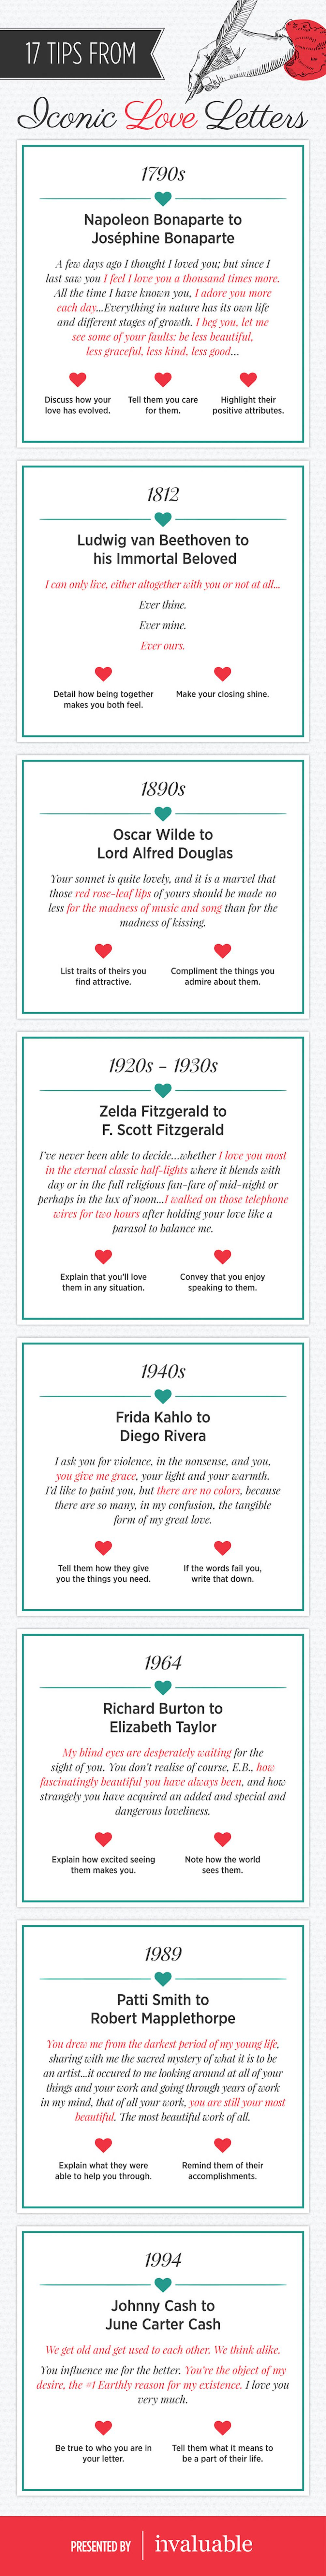 How famous people from history wrote their love letters invaluable iconic love letters infographic expocarfo